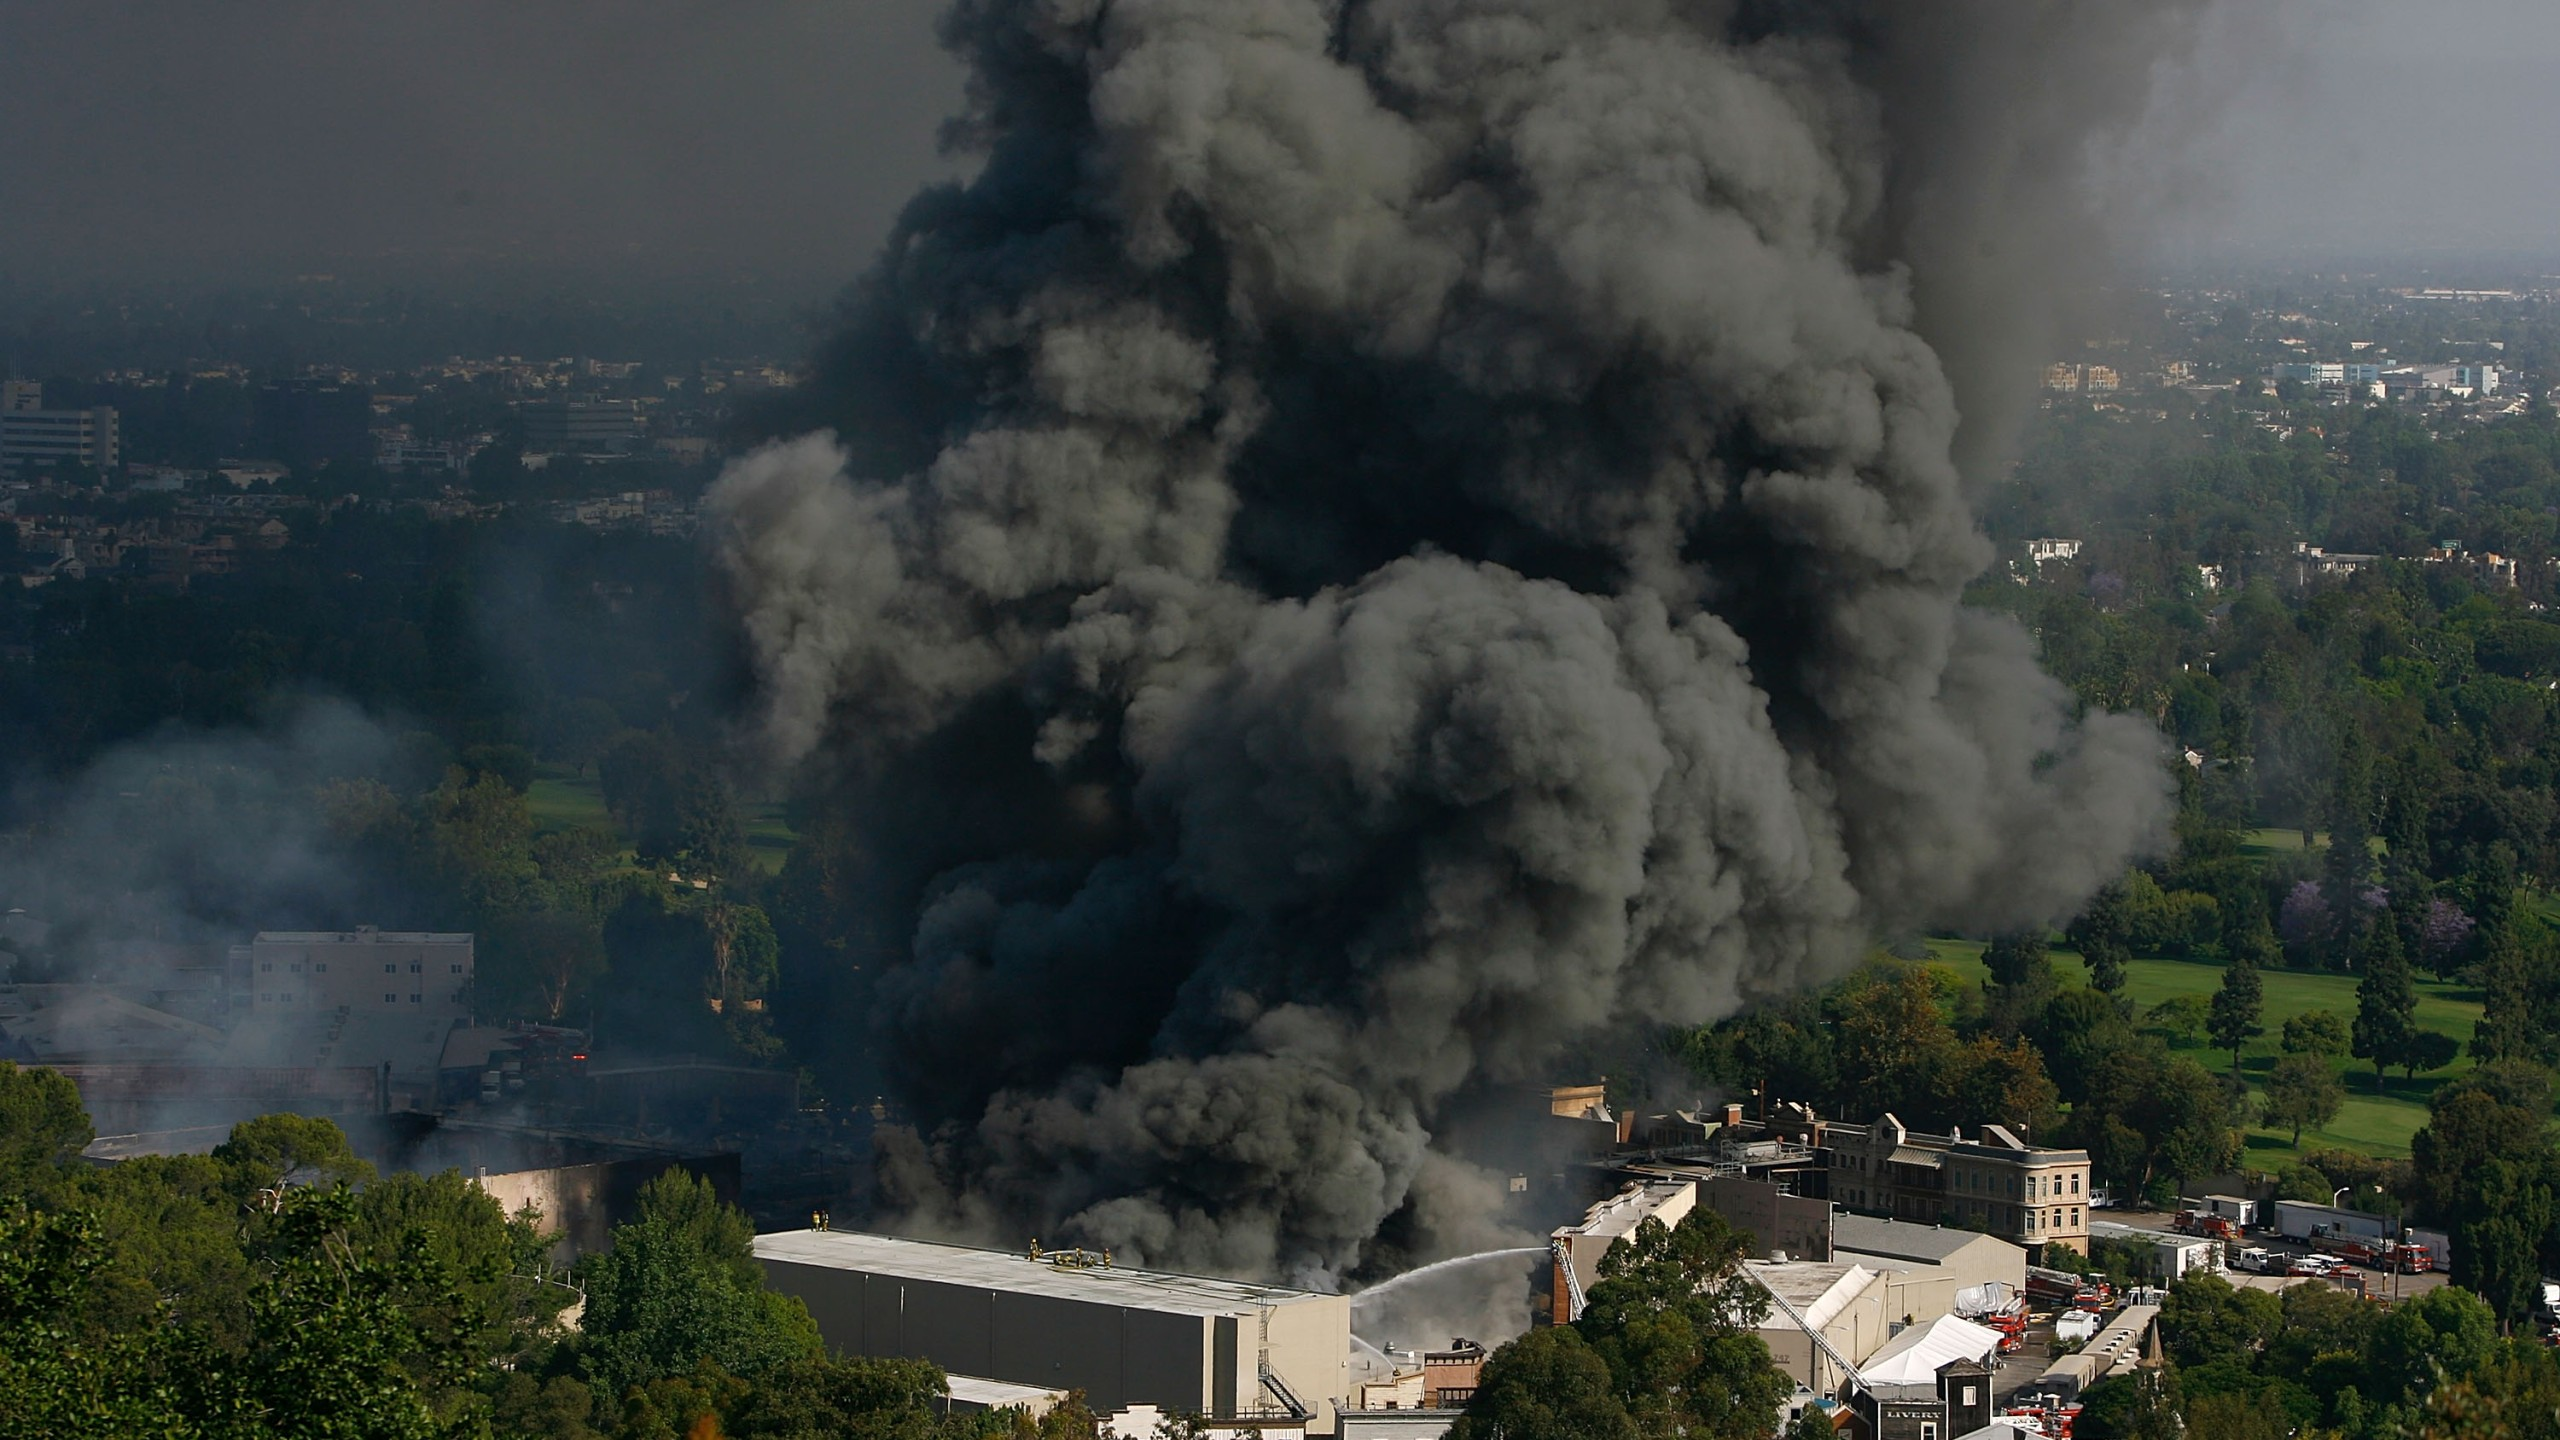 Approximately 300 firefighters battle a huge fire on the backlot of Universal Studios on June 1, 2008 in Universal City, California. (Credit: David McNew/Getty Images)